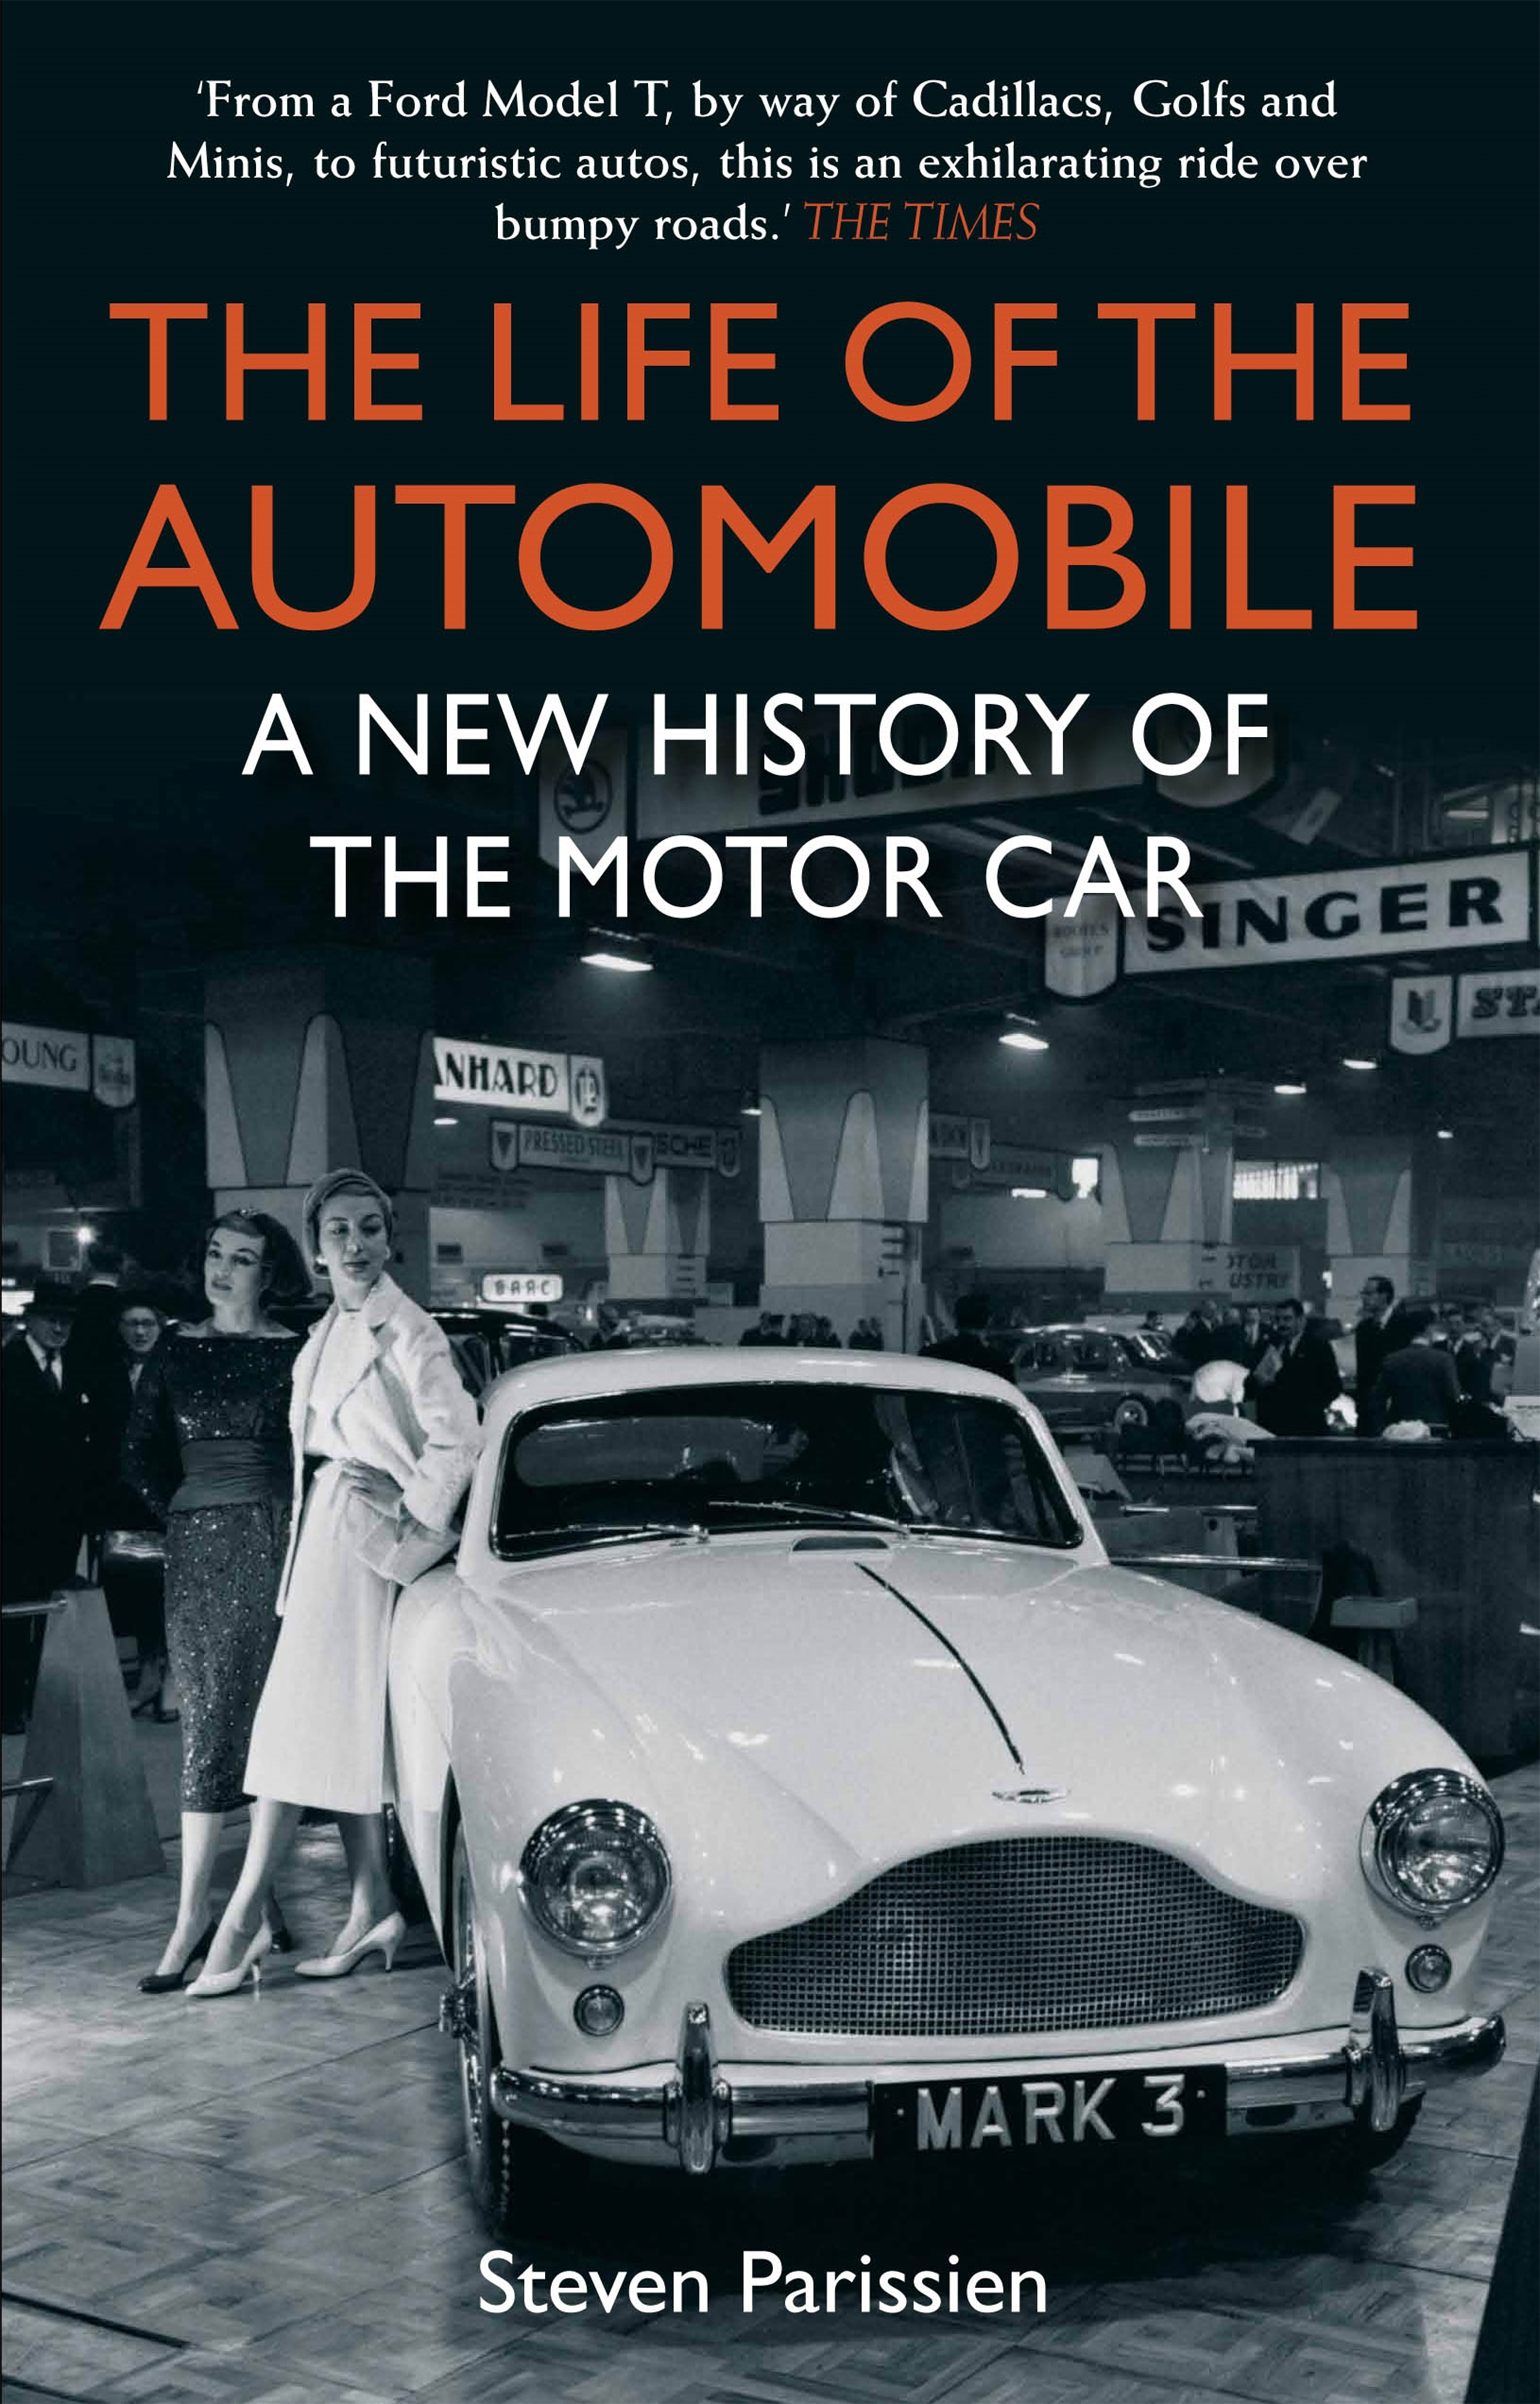 a history of the automobile over the years